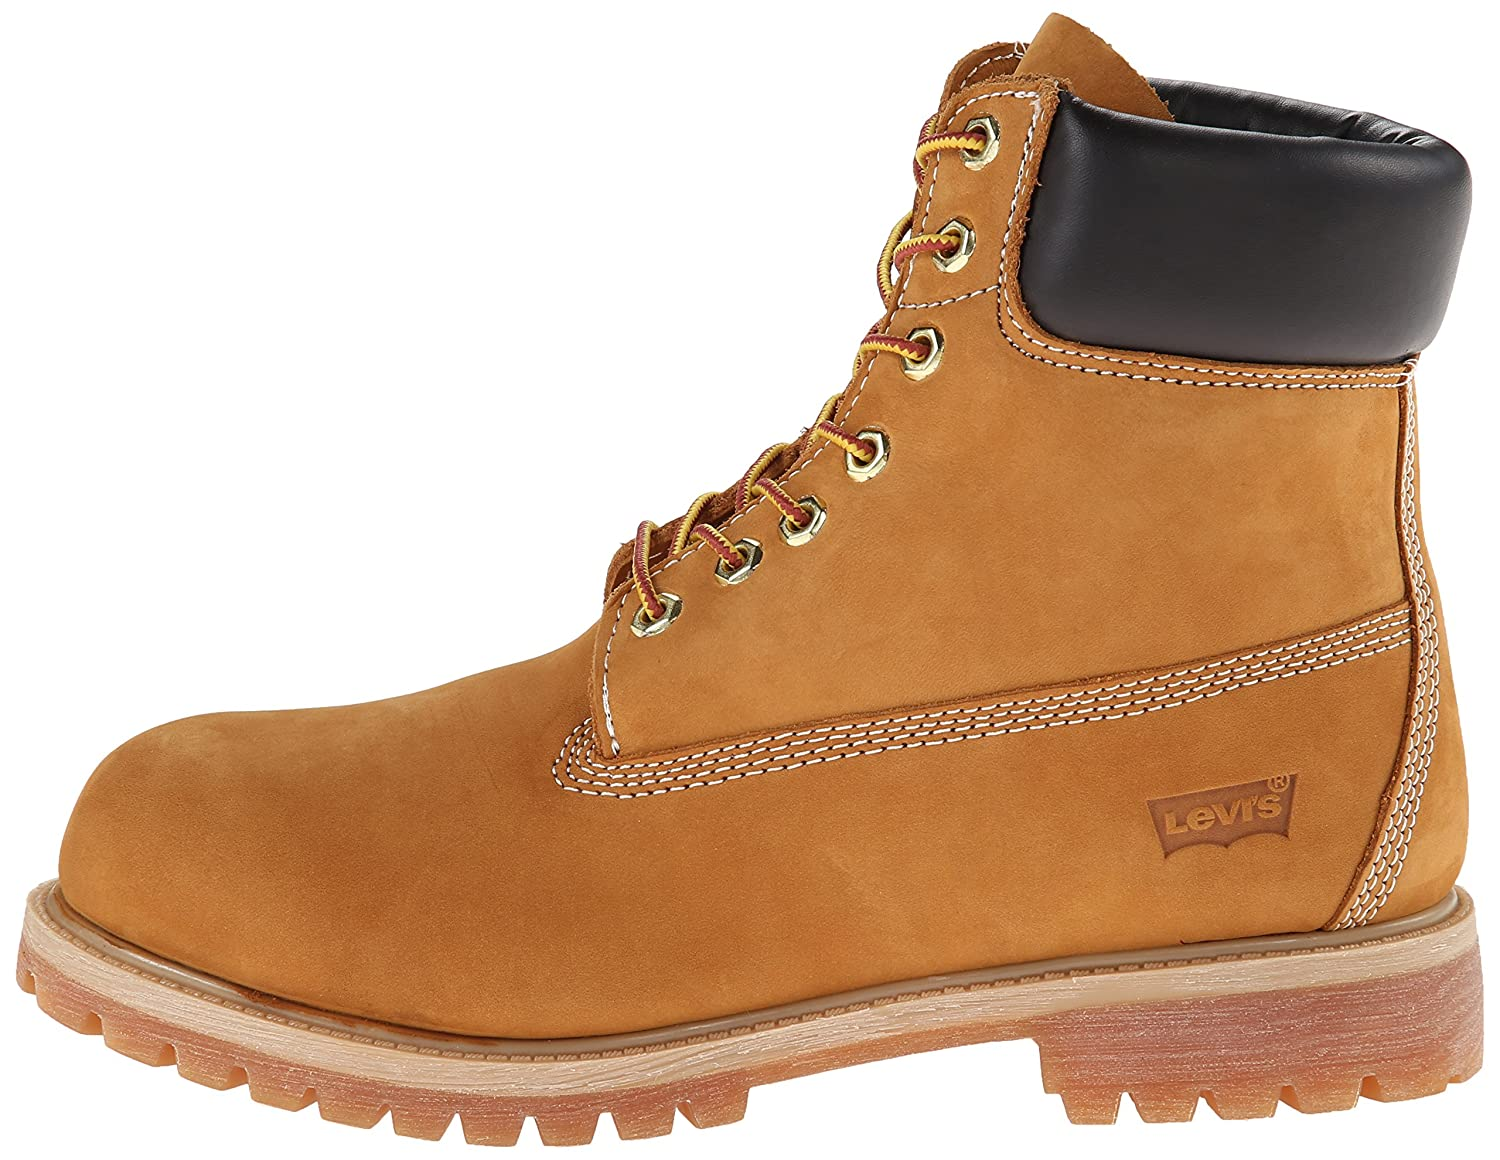 similar to timberland boots